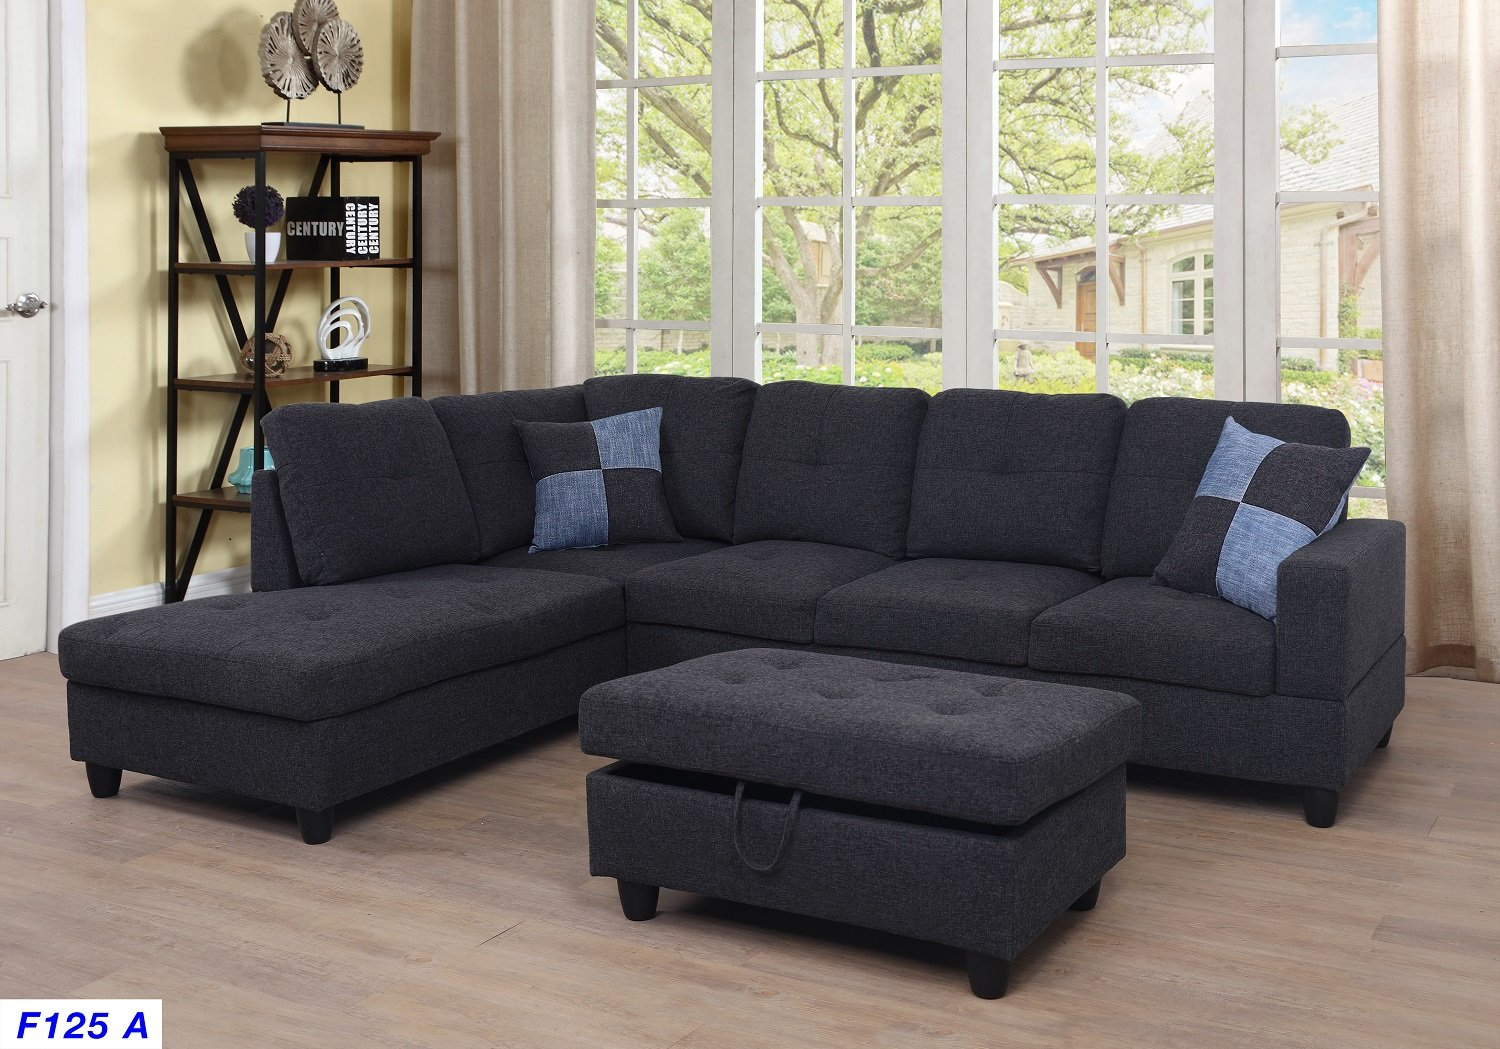 Star Home Living Left Facing Sectional Sofa with Ottoman, Charcoal Grey by Eternity Home